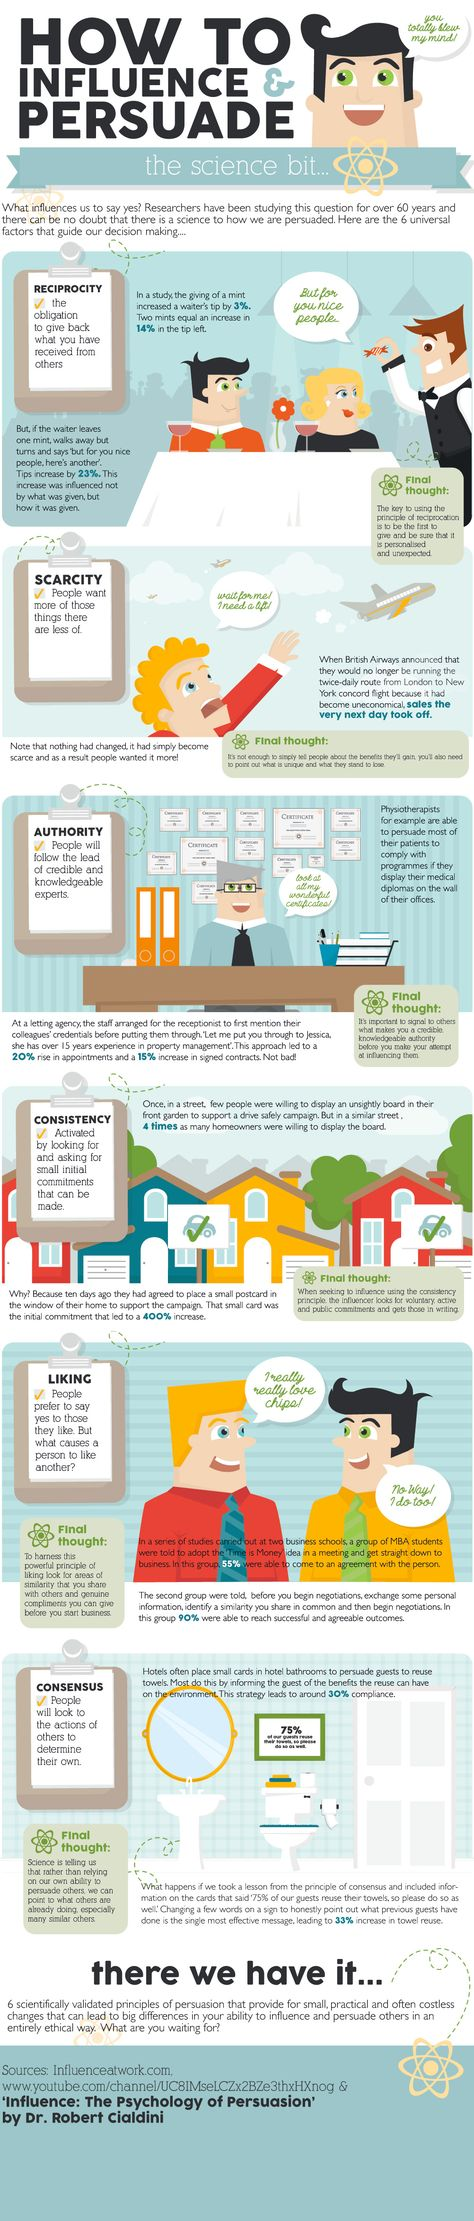 The 6 Elements of Persuasion (Infographic)